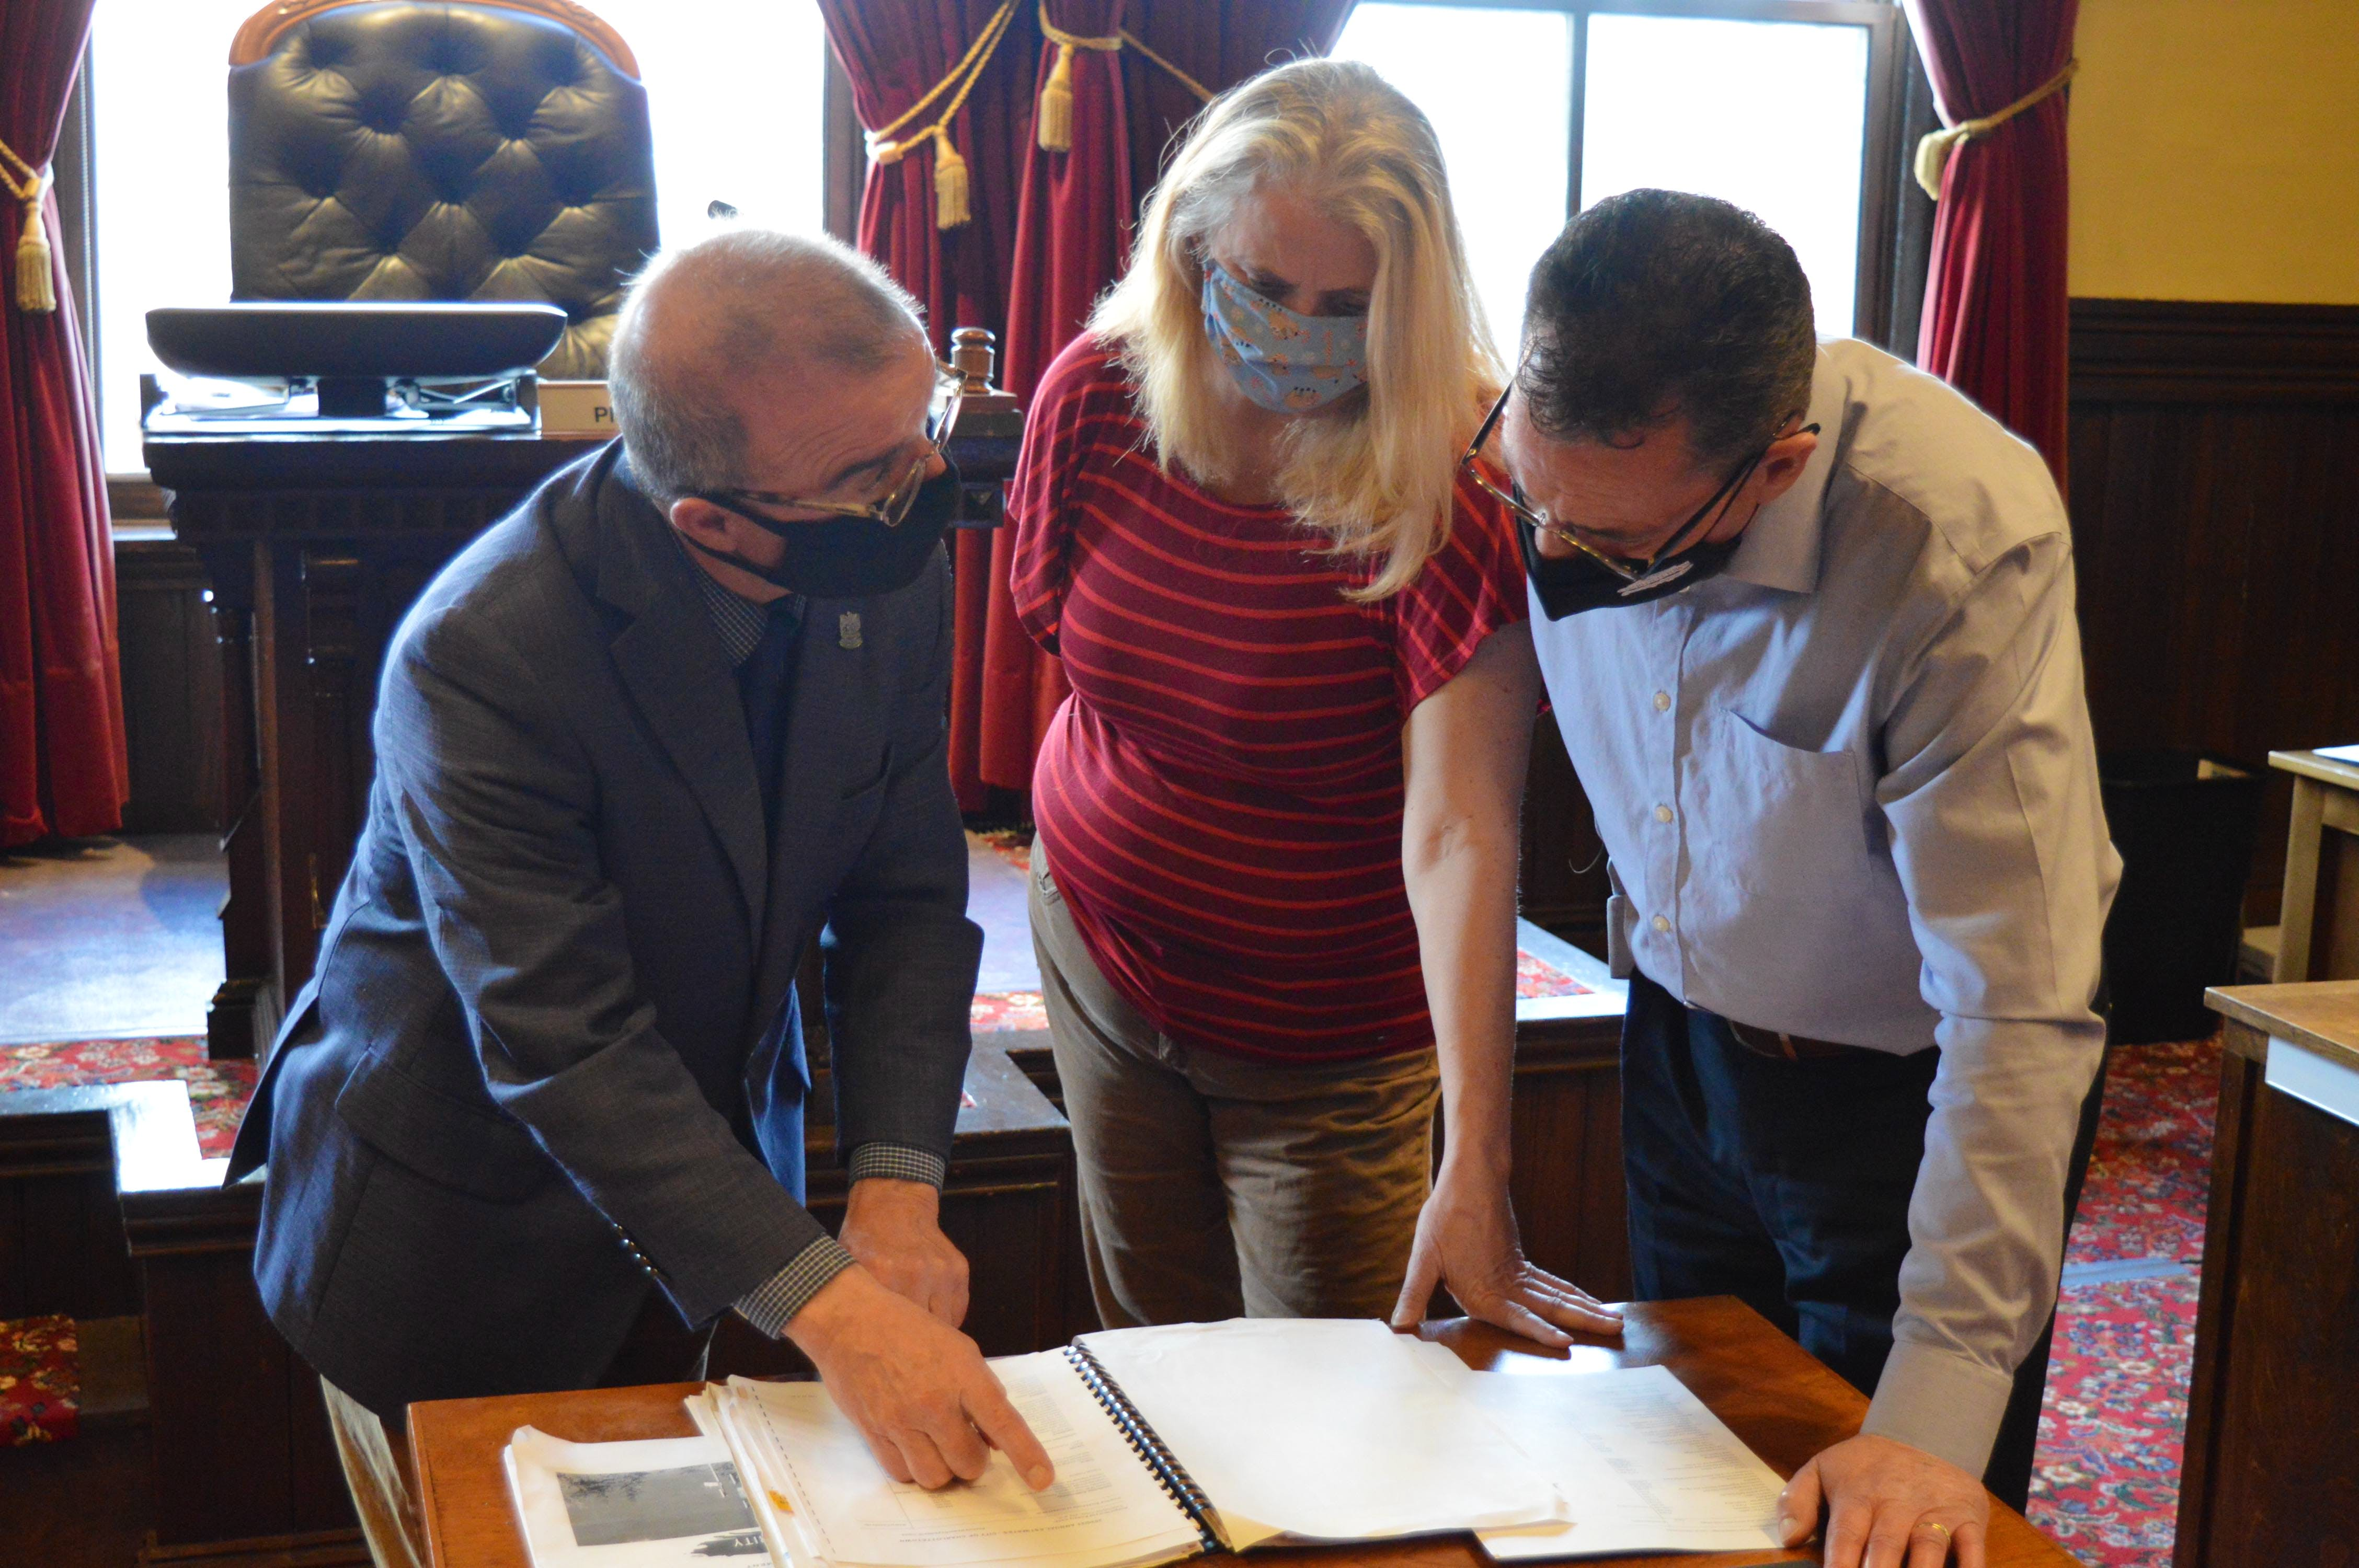 Charlottetown Mayor Philip Brown goes over the 2021-22 capital budget on Monday with Connie McGaugh, accounting clerical clerk; and Stephen Wedlock, controller for the city.